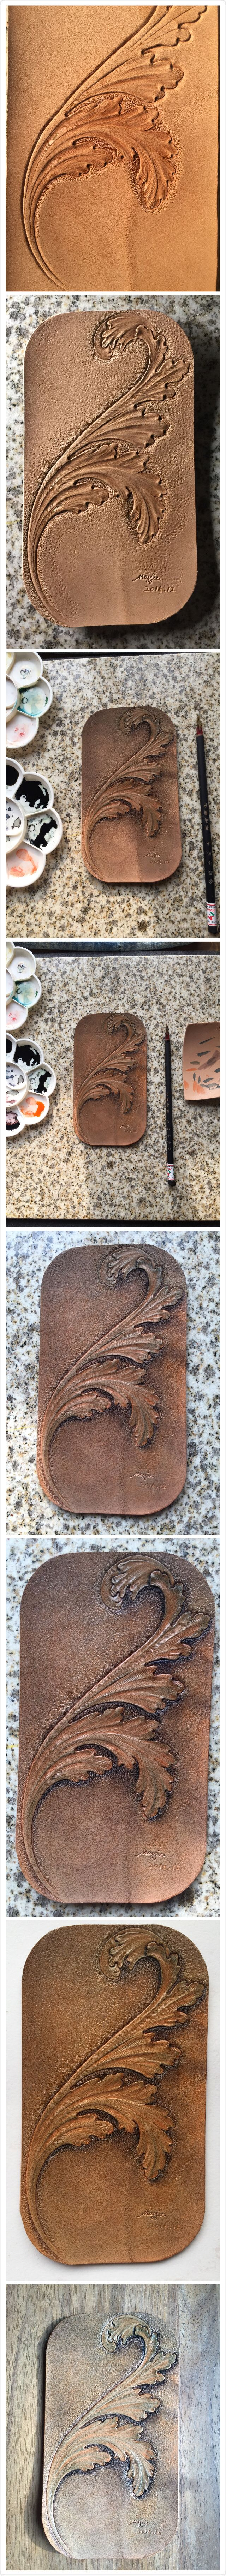 leather carved acanthus leaves(process)